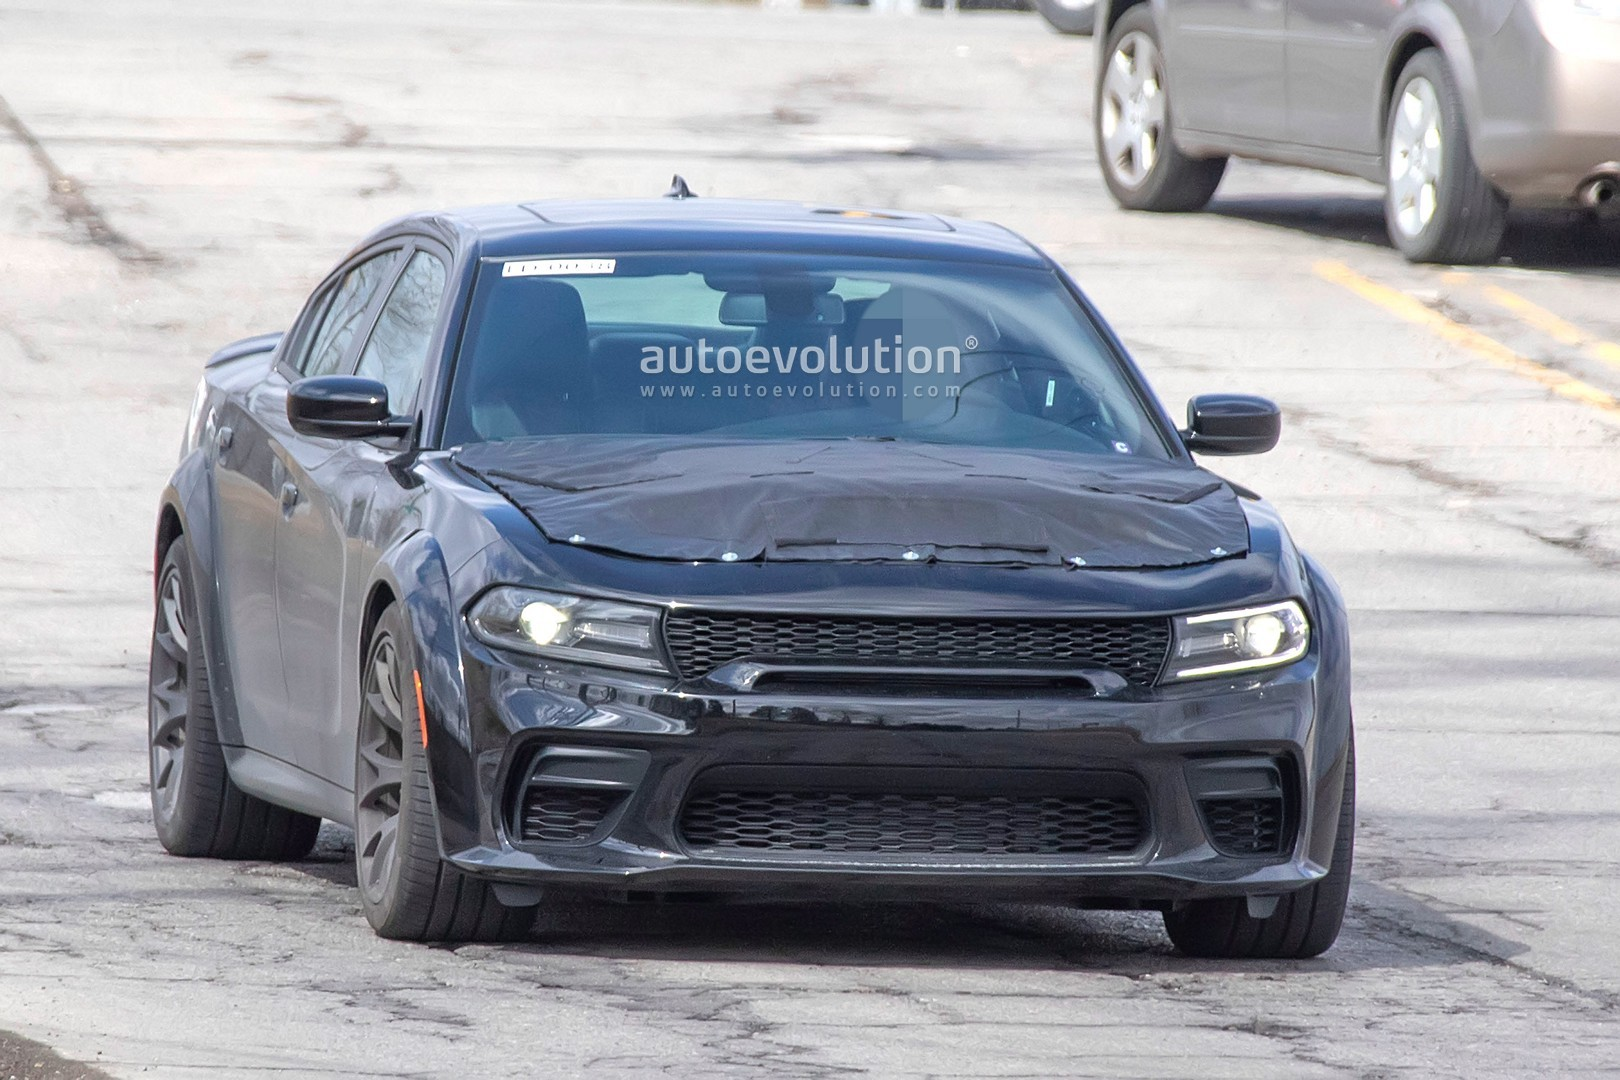 2021 dodge charger hellcat redeye widebody spied  is totally awesome